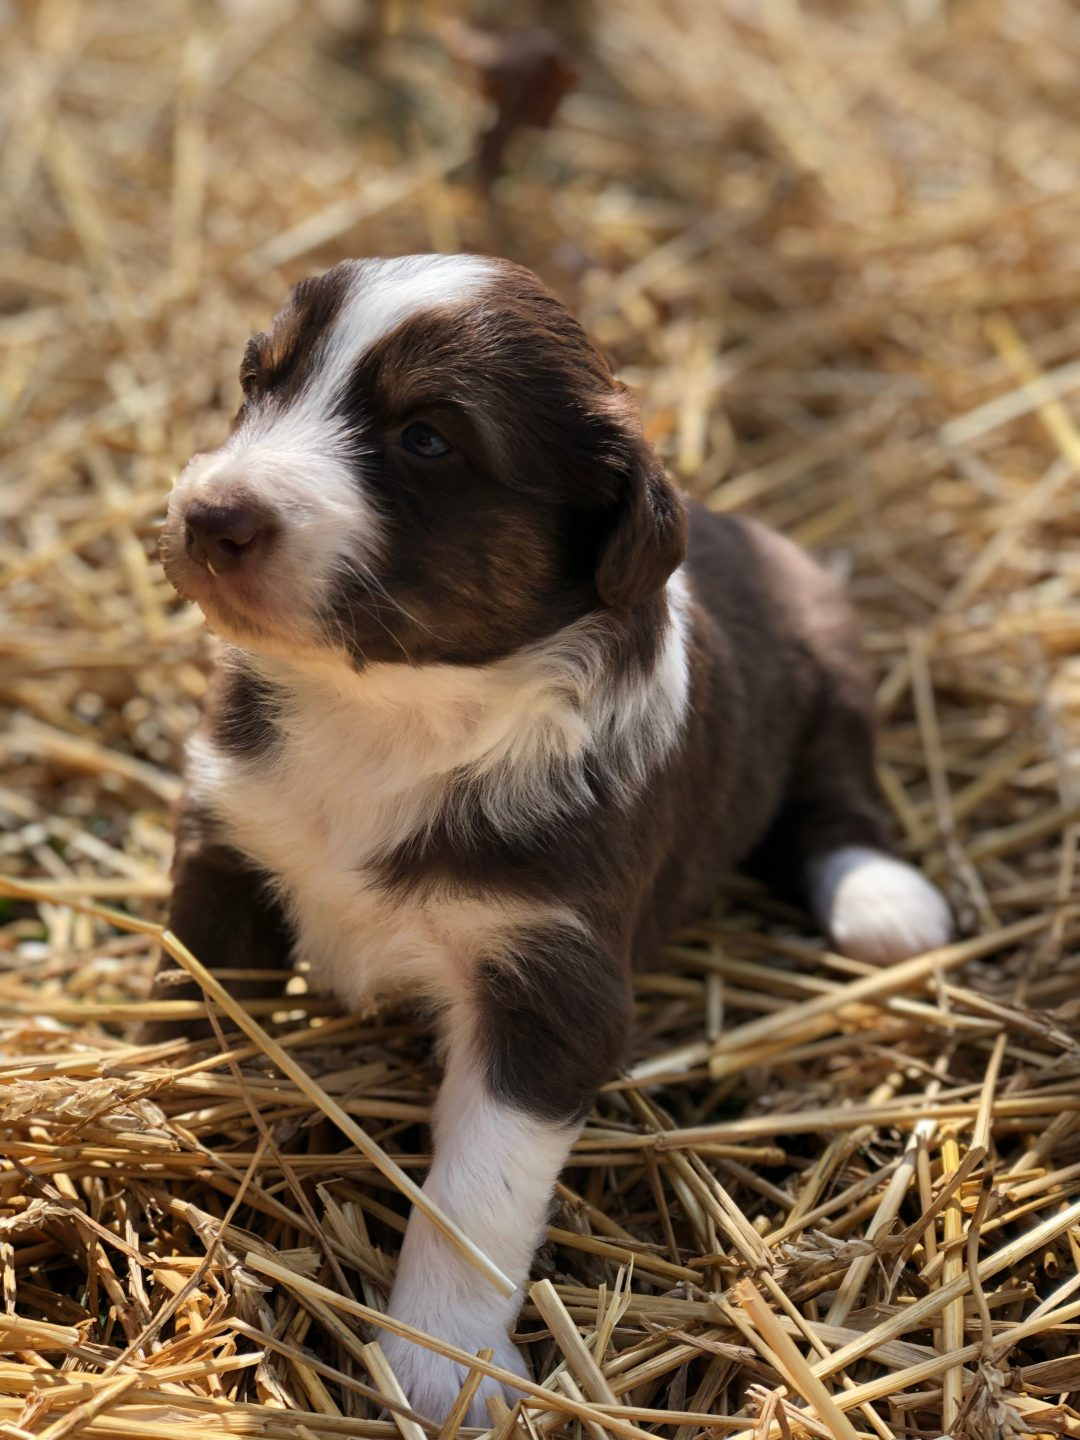 Maple - a female ASDR/CKC Australian Shepherd puppy in Stockport, Ohio